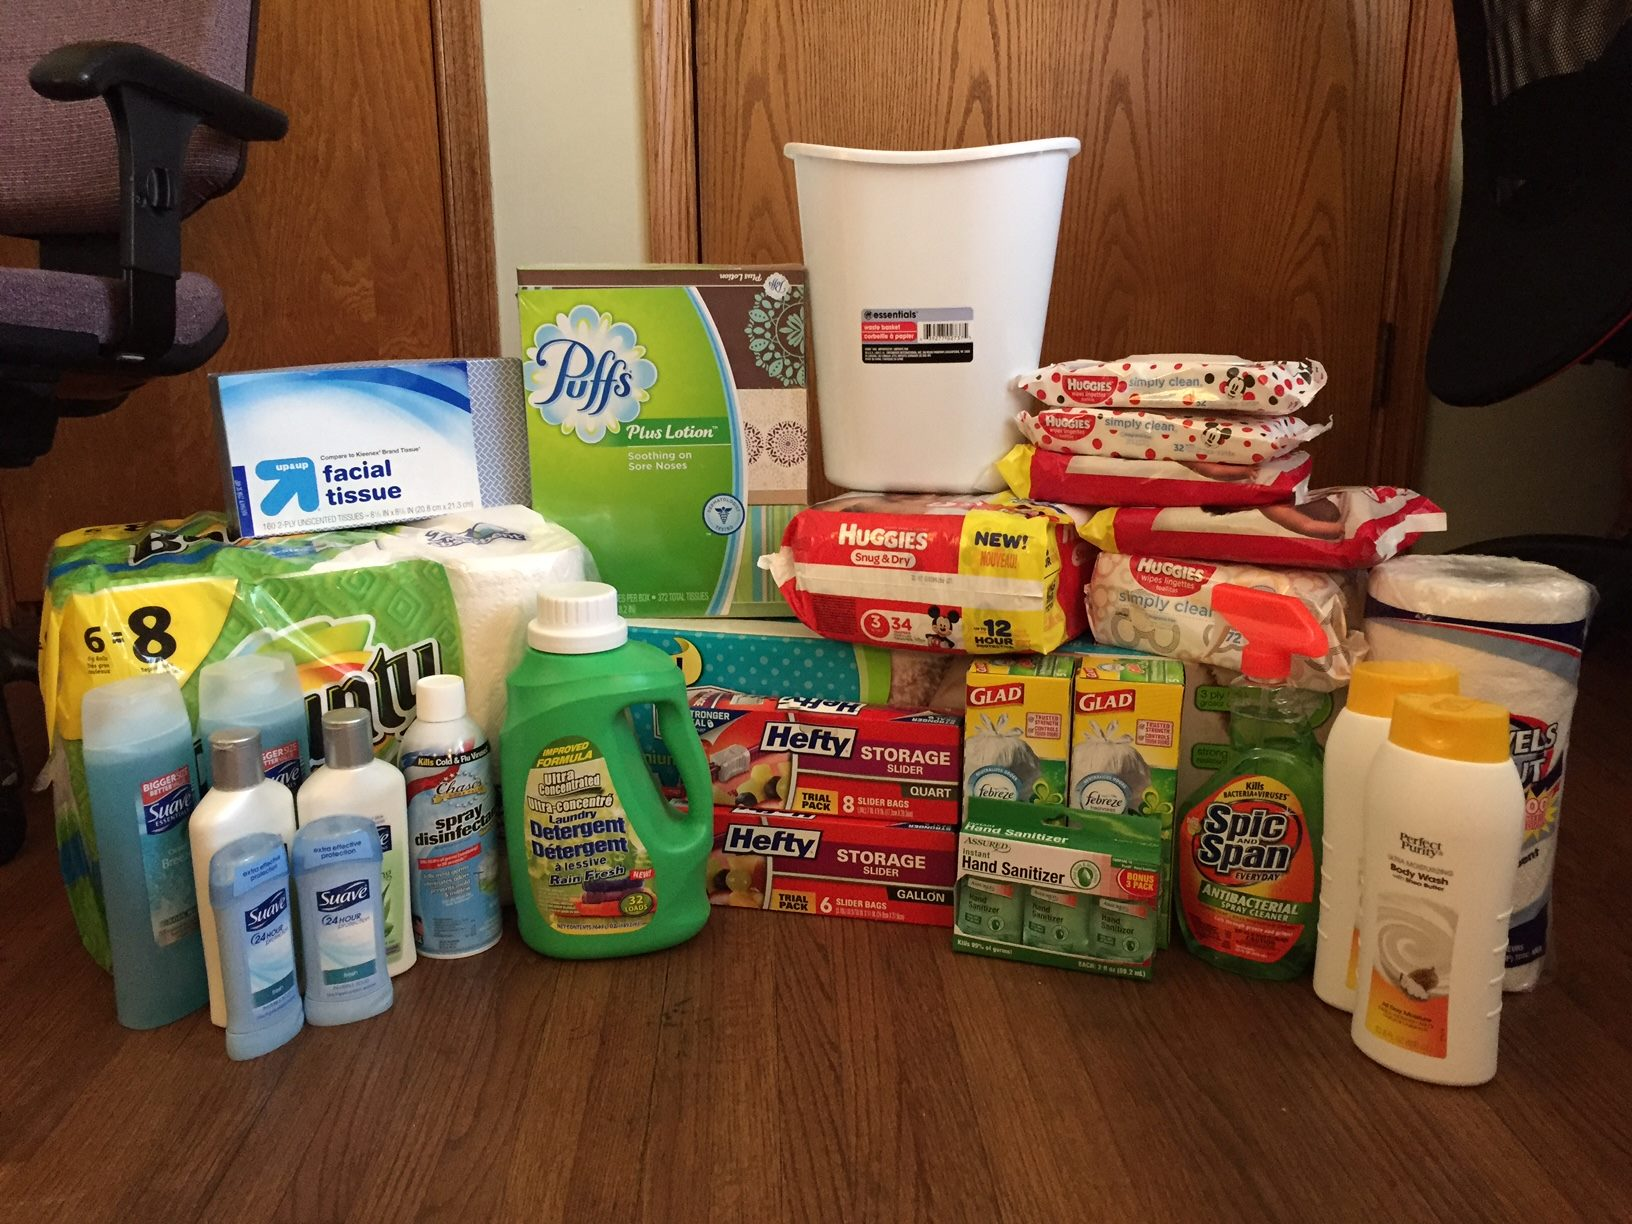 Just a small snapshot of all the items that were donated